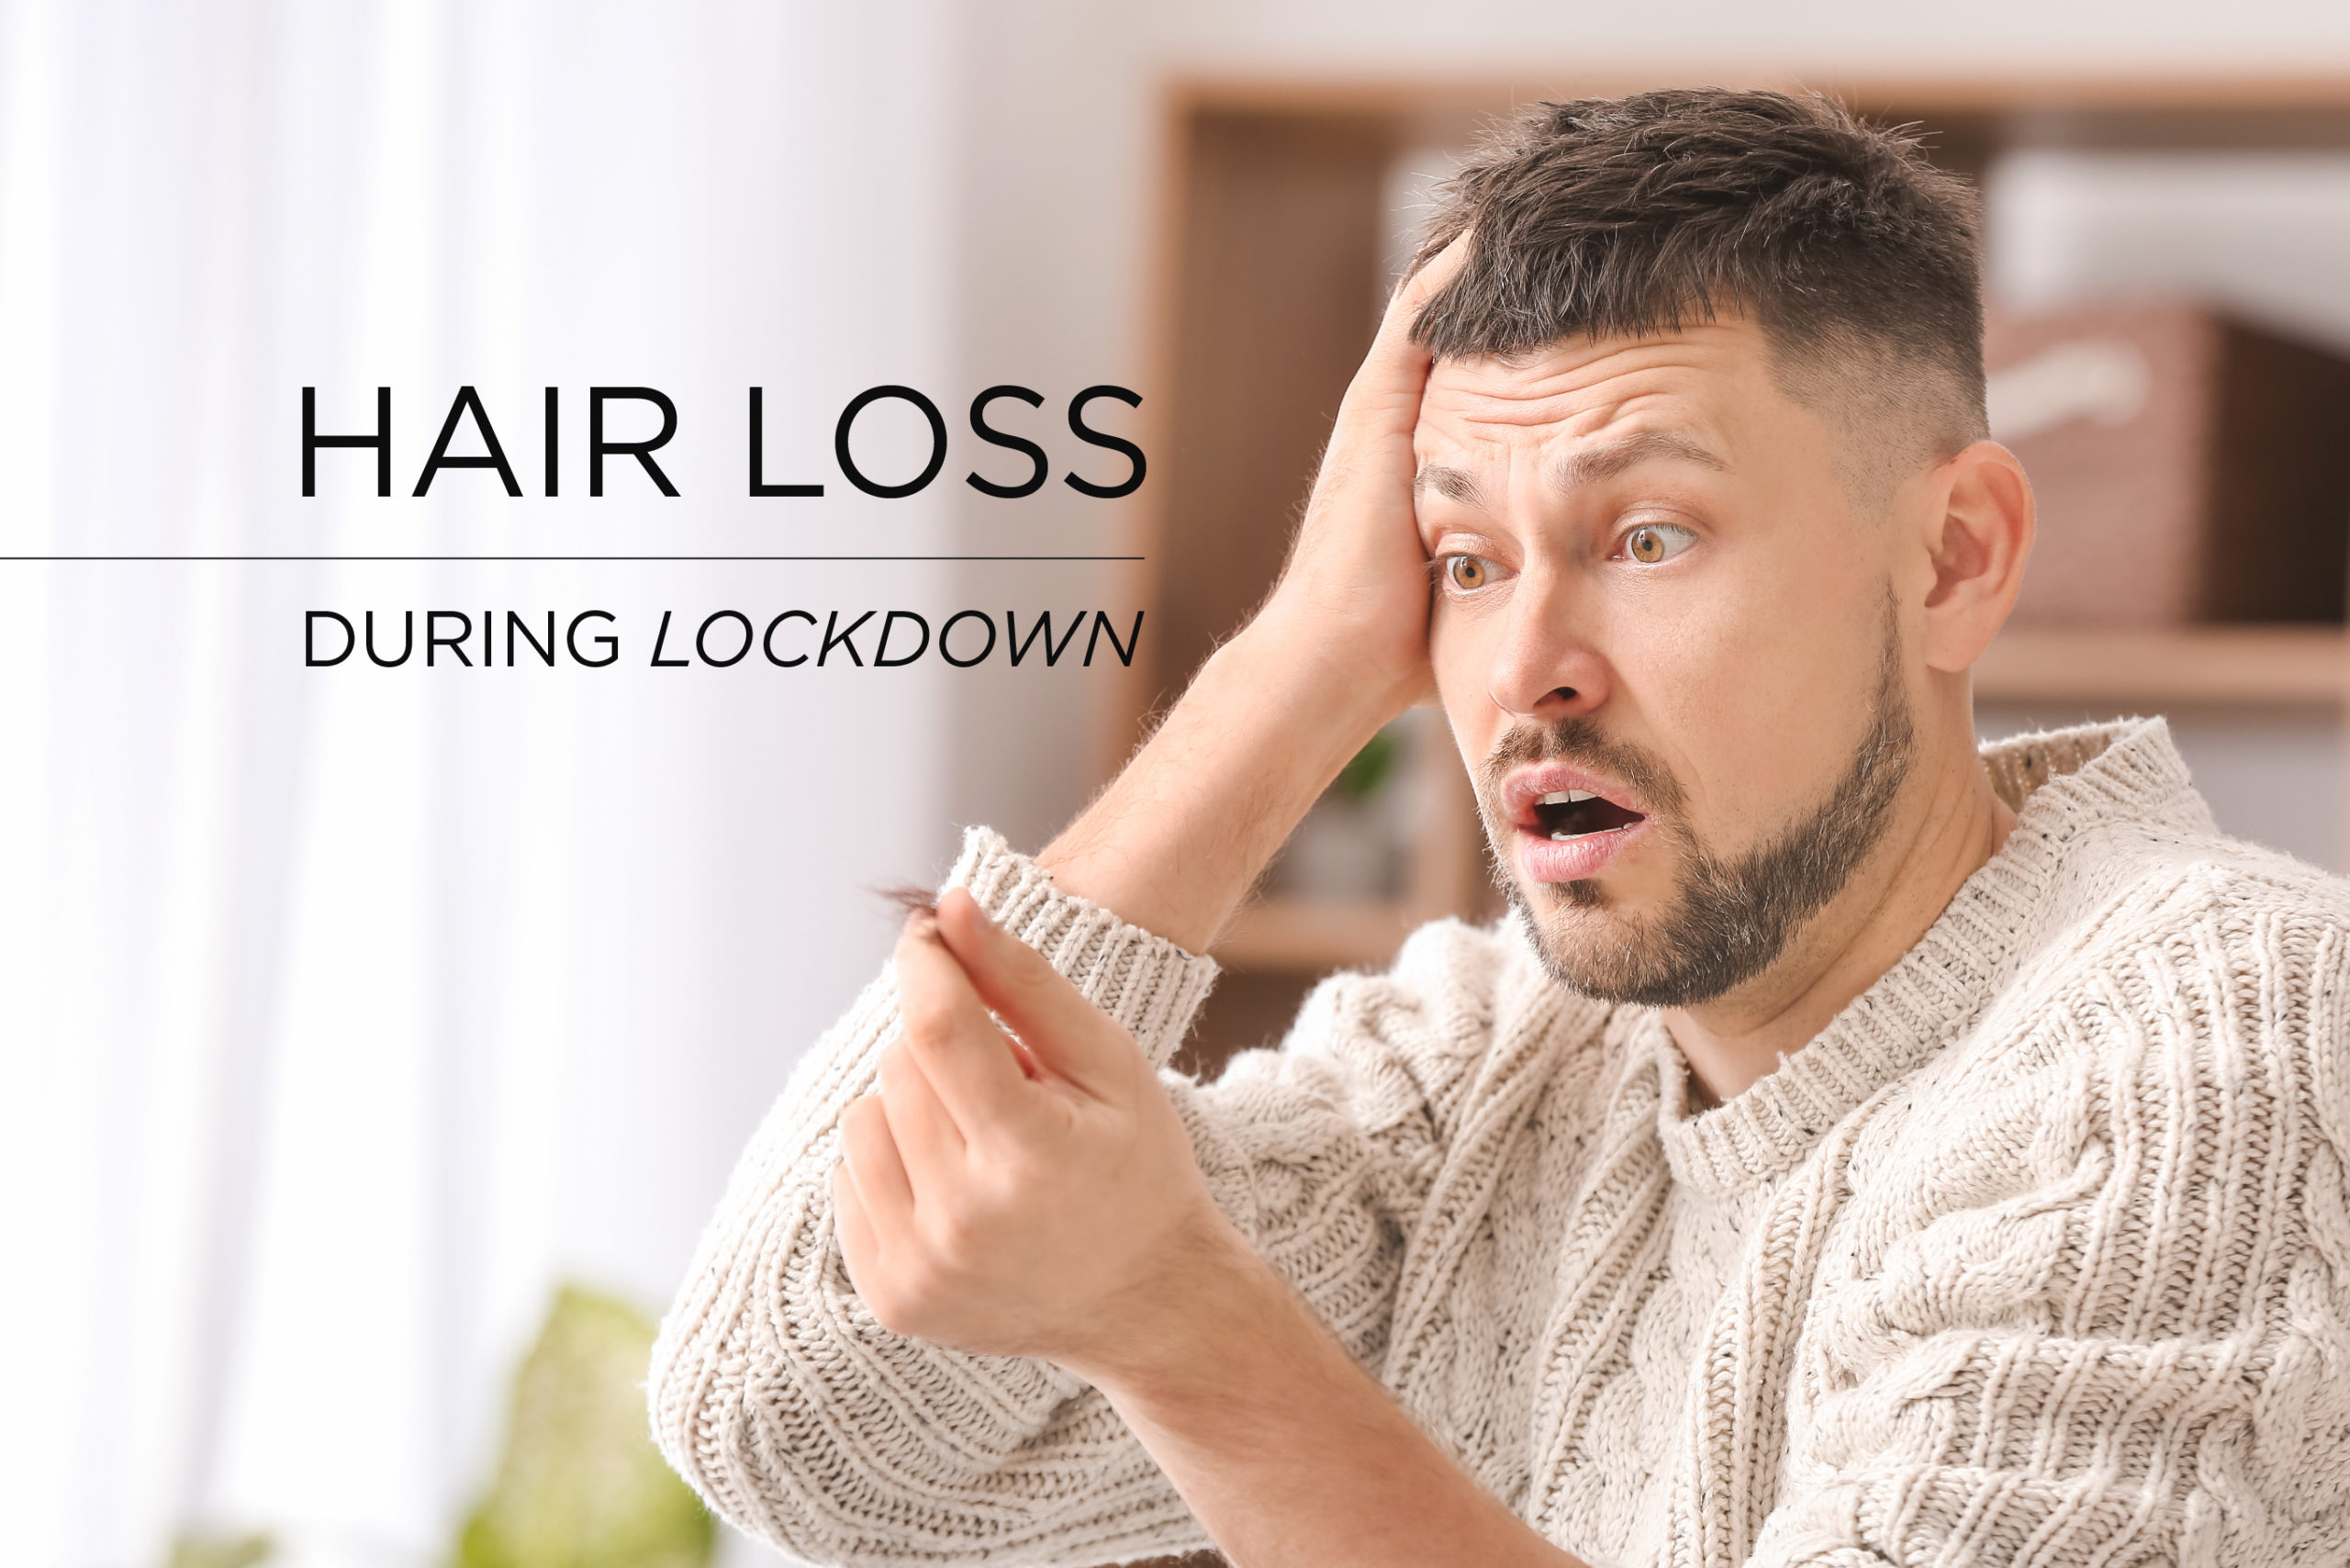 Losing hair during lockdown, and how to fix it.